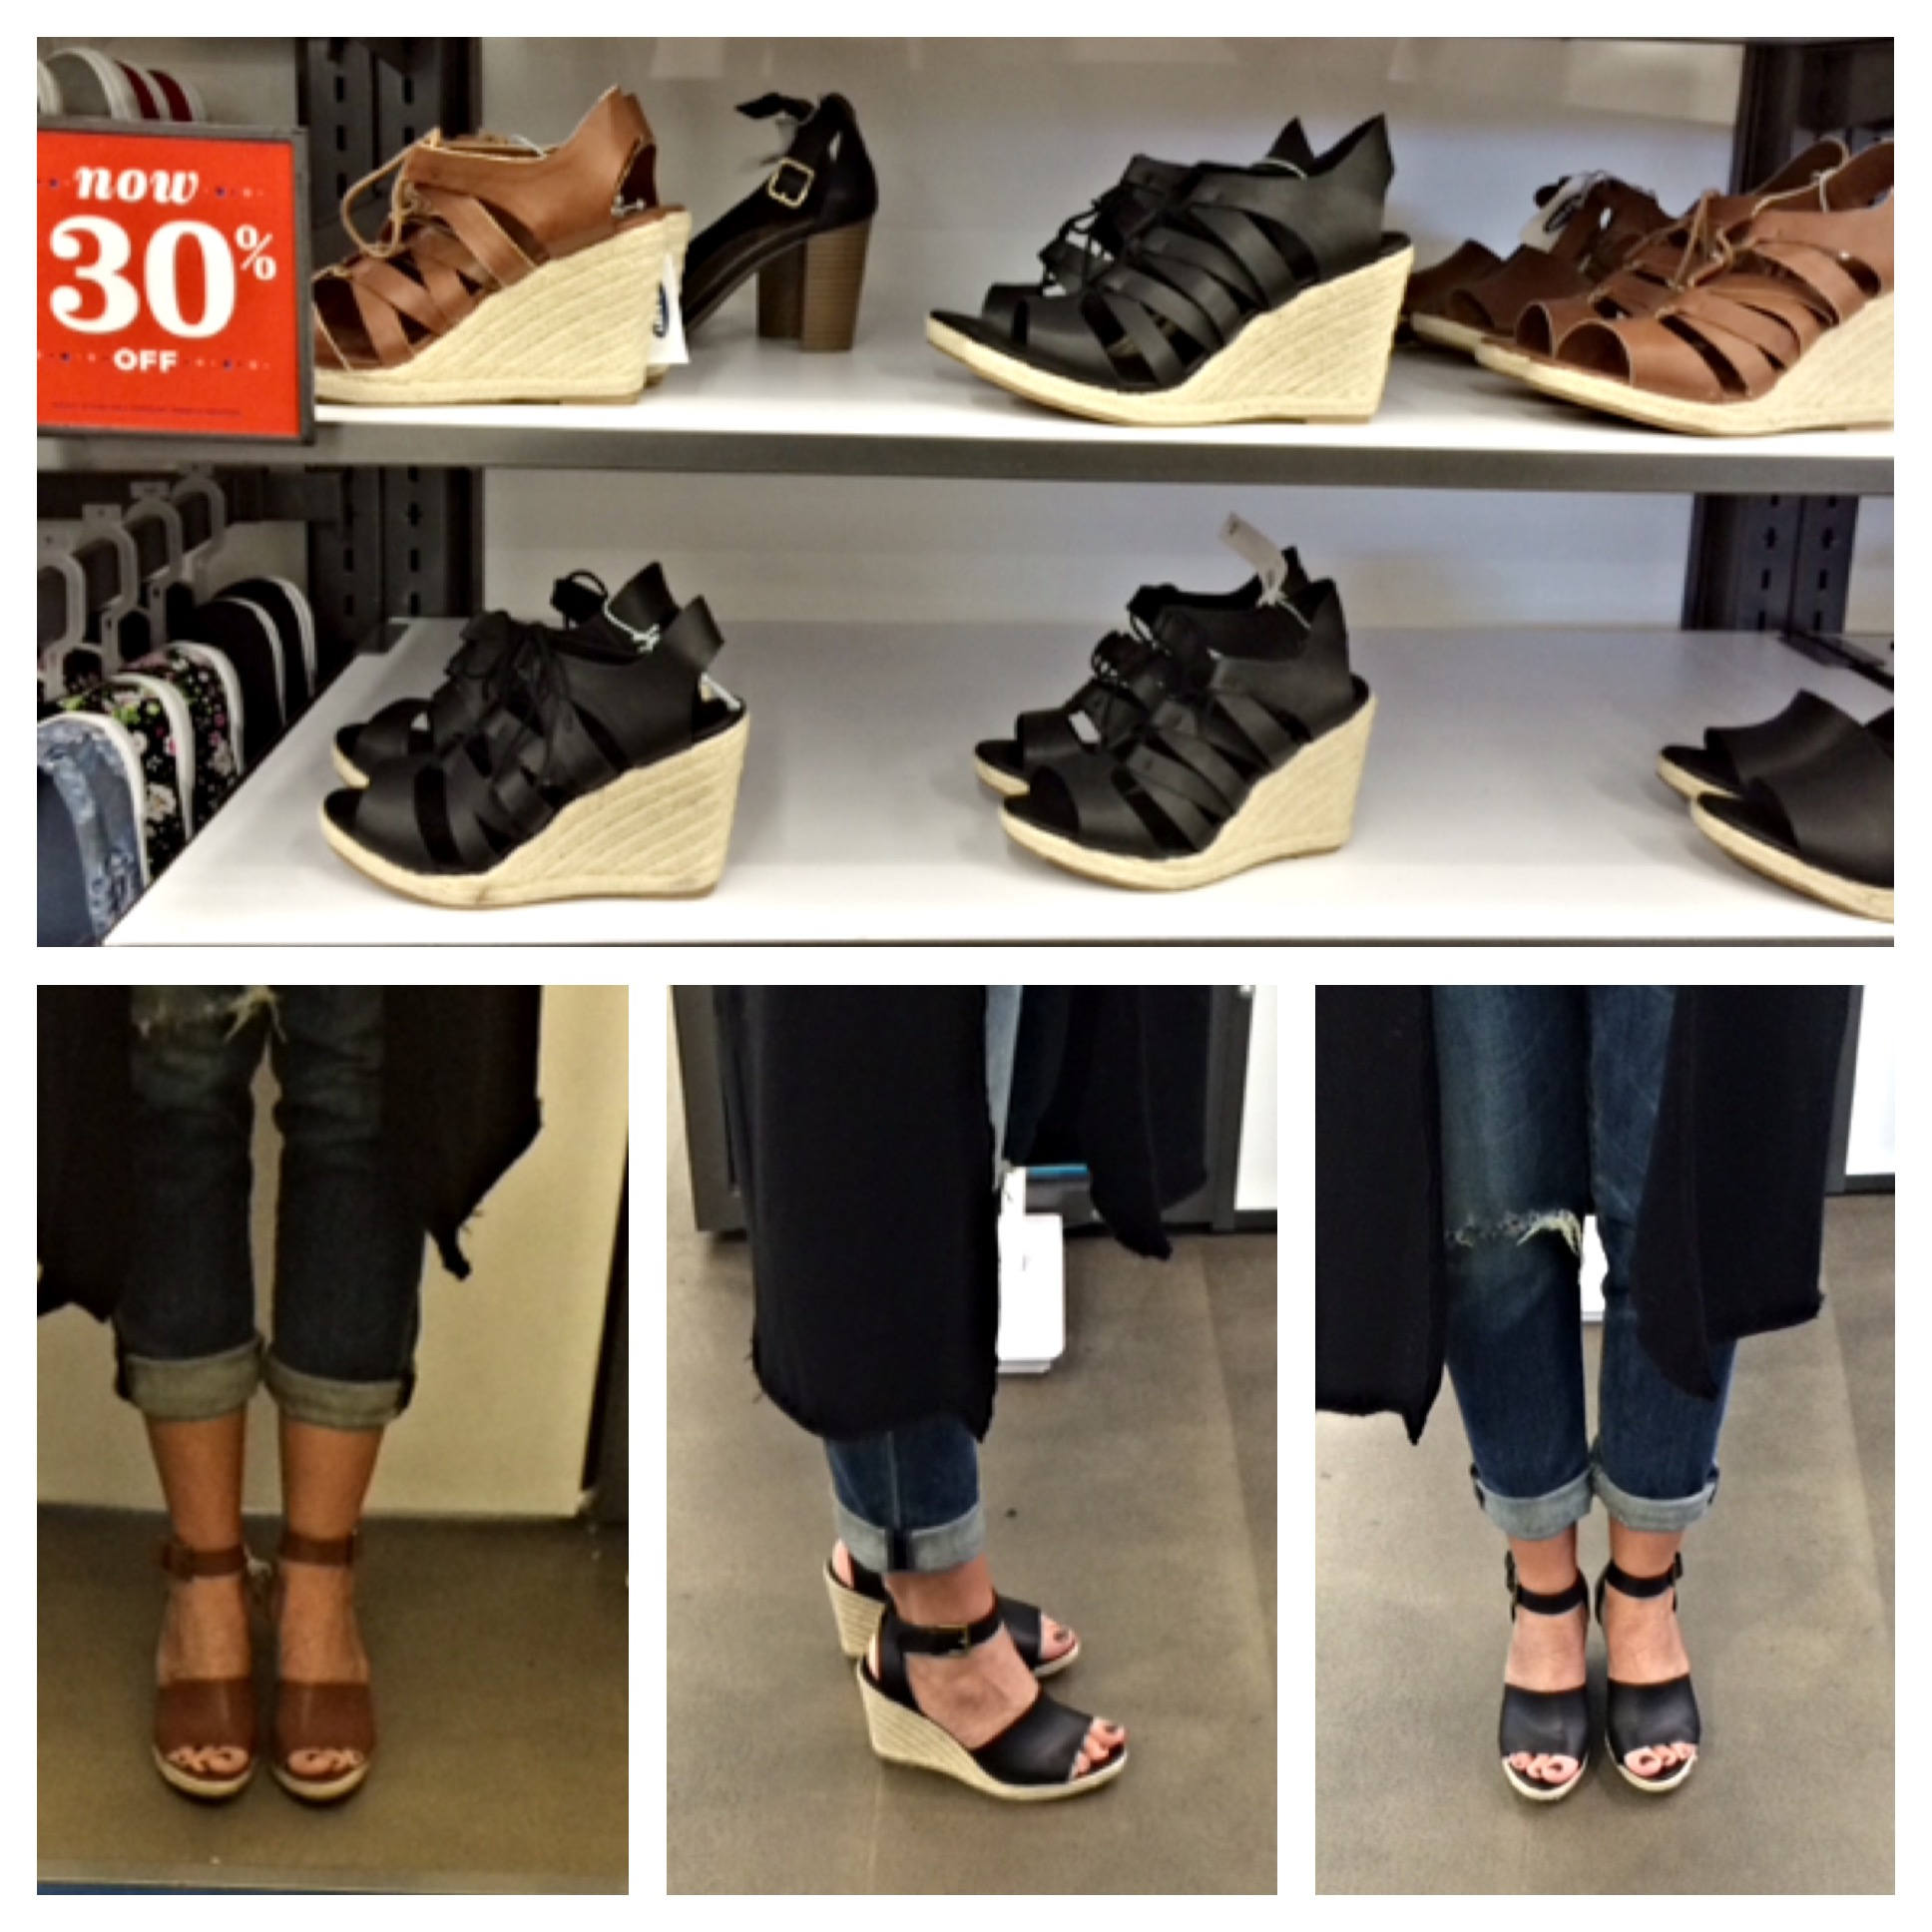 c2109e997c0 Must Have Shoe for Summer - The Wedge Sandal - Ask Suzanne Bell